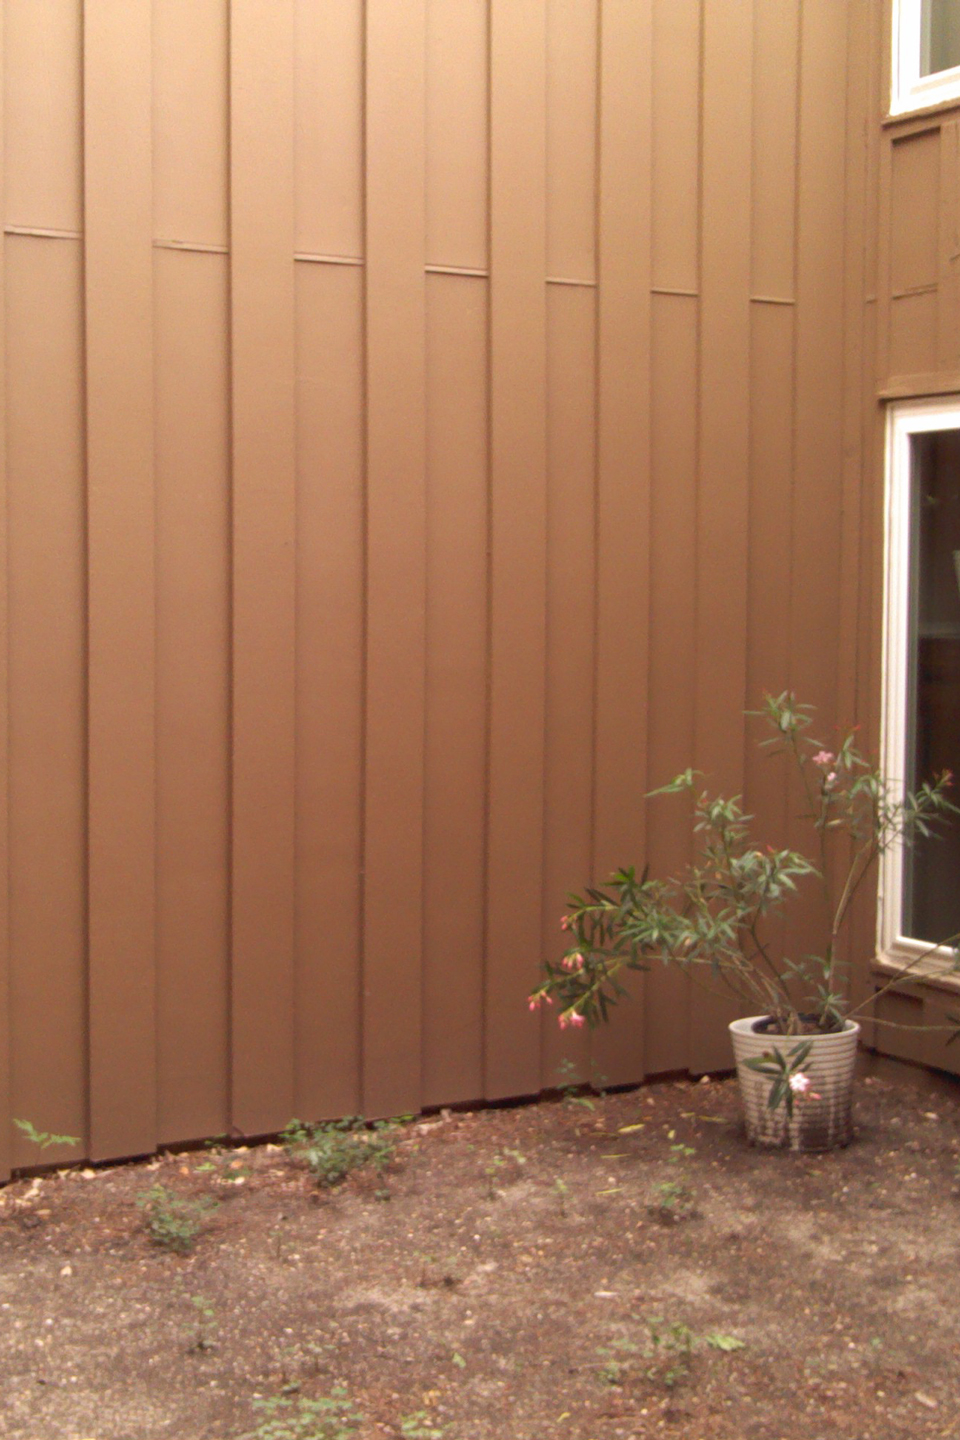 A before image of a small yard with a dirt patch